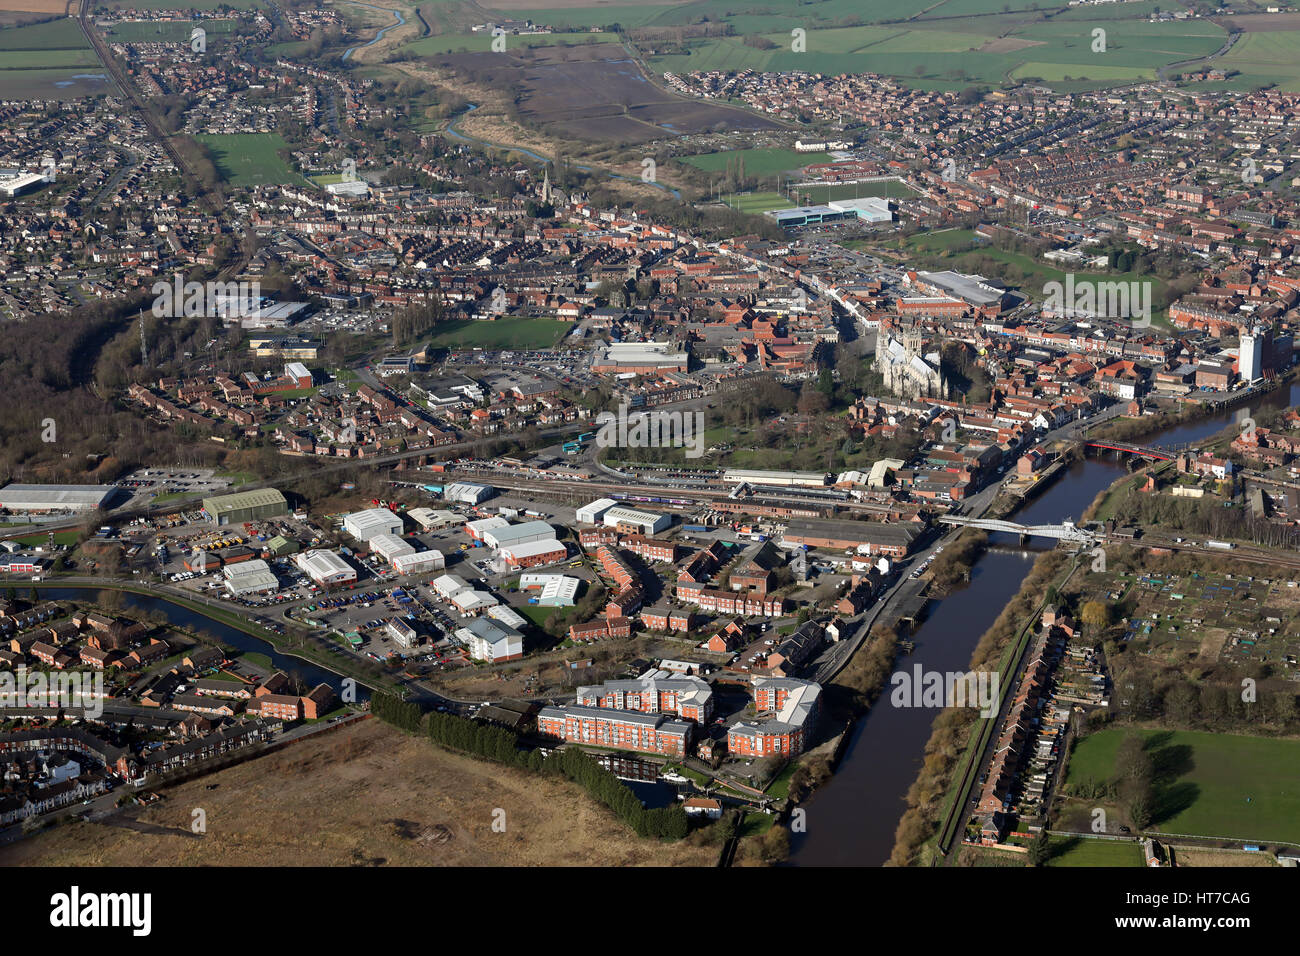 aerial view of the Yorkshire market town of Selby on the River Ouse, UK - Stock Image